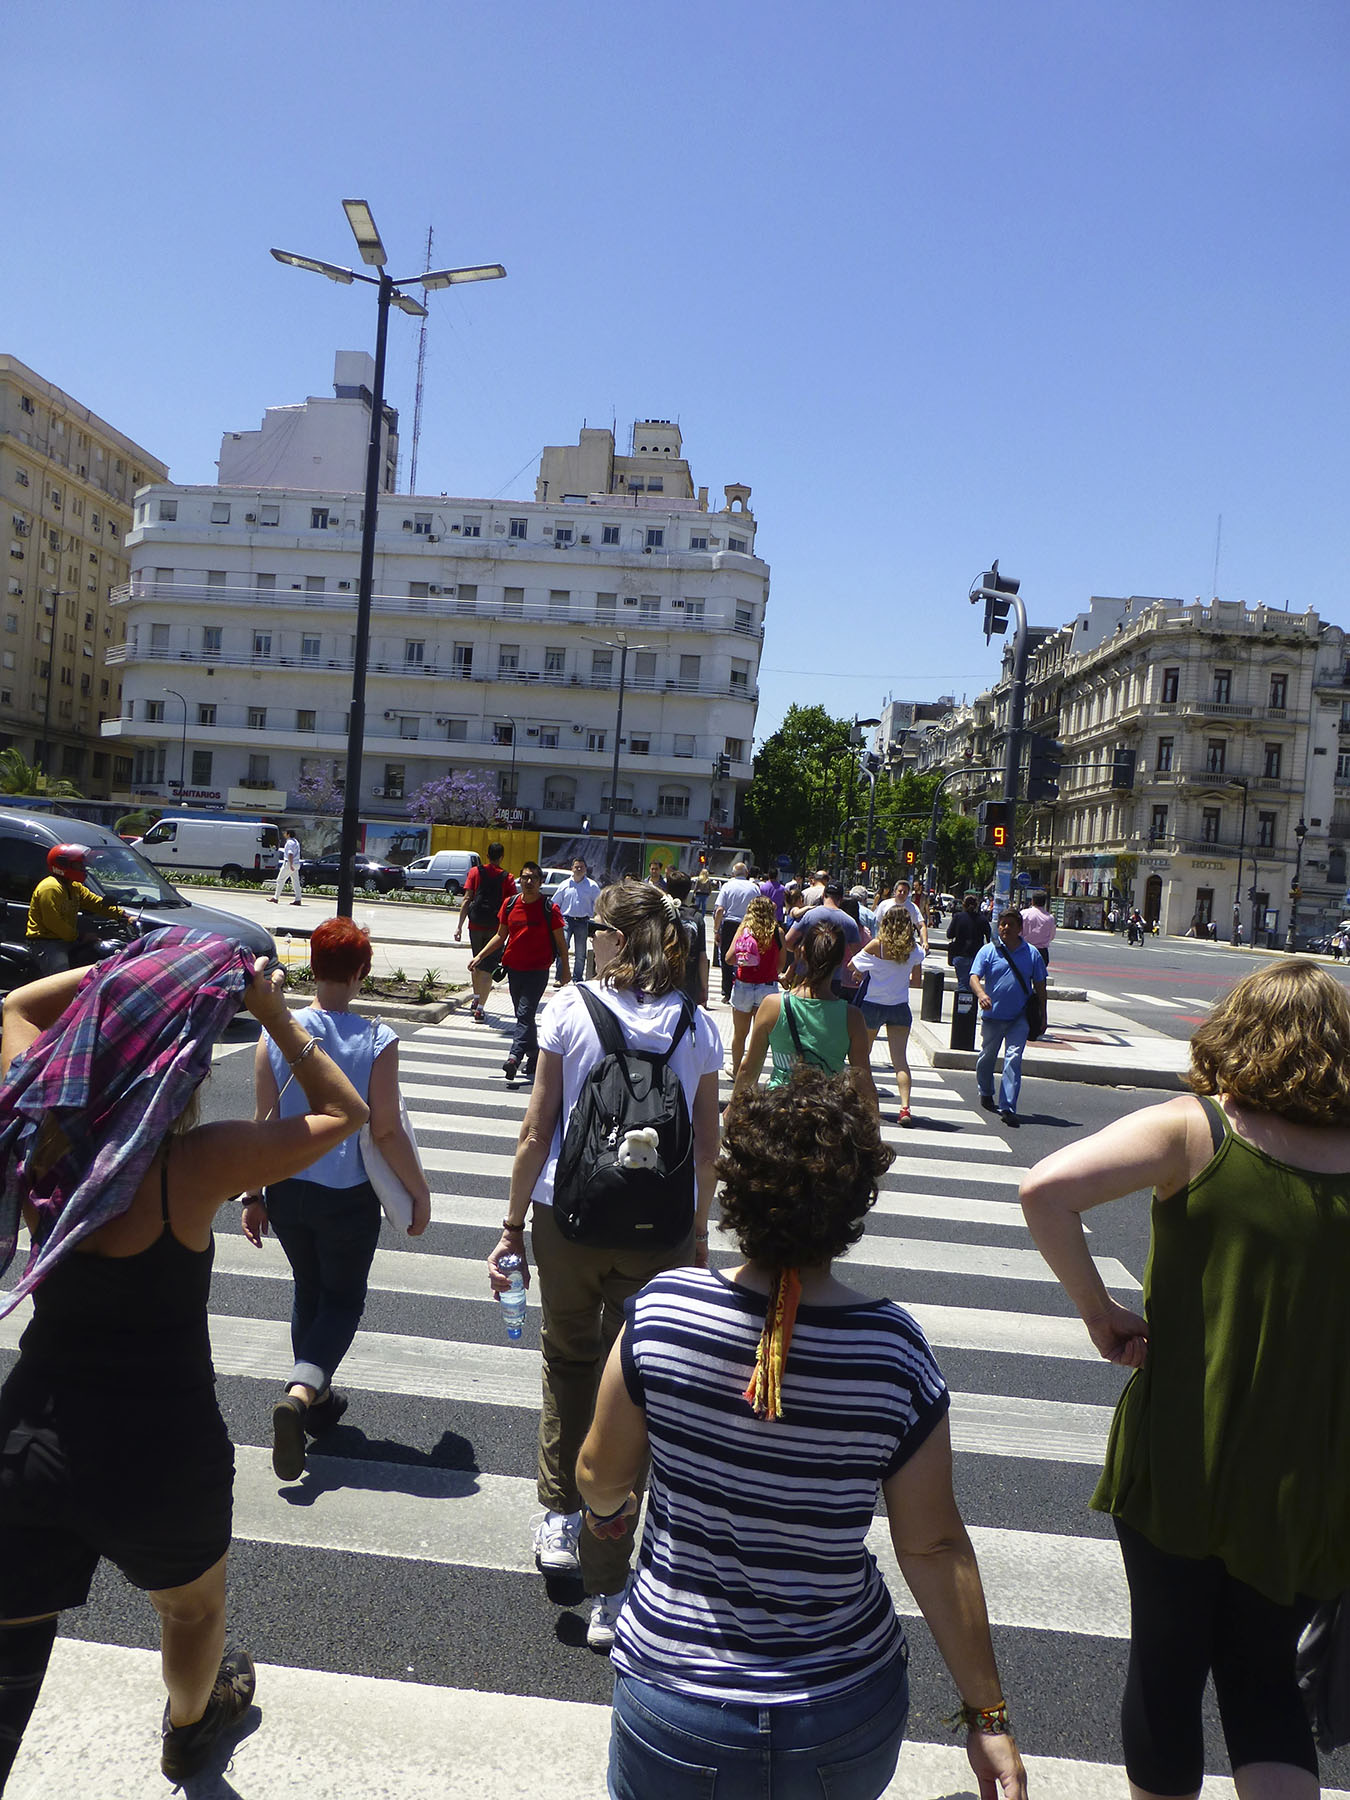 Crossing The 9 de Julio Avenue - The Widest Street In The World